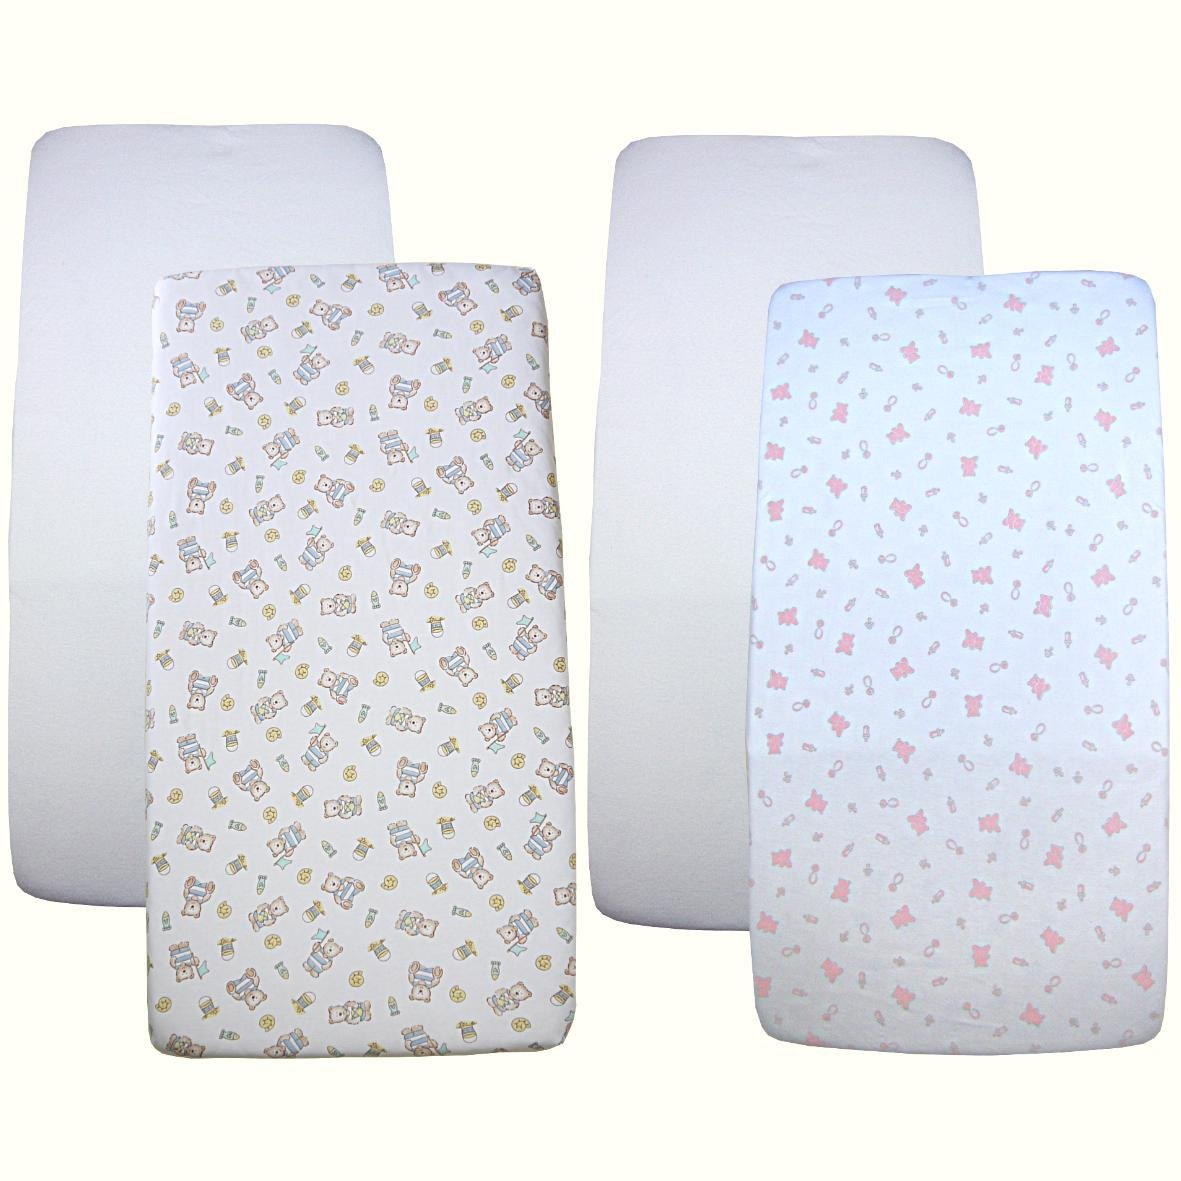 Babyprem Nursery 2 Fitted Cotton Cradle Sheets 17 X 33'' White & Pink/Blue Teddy